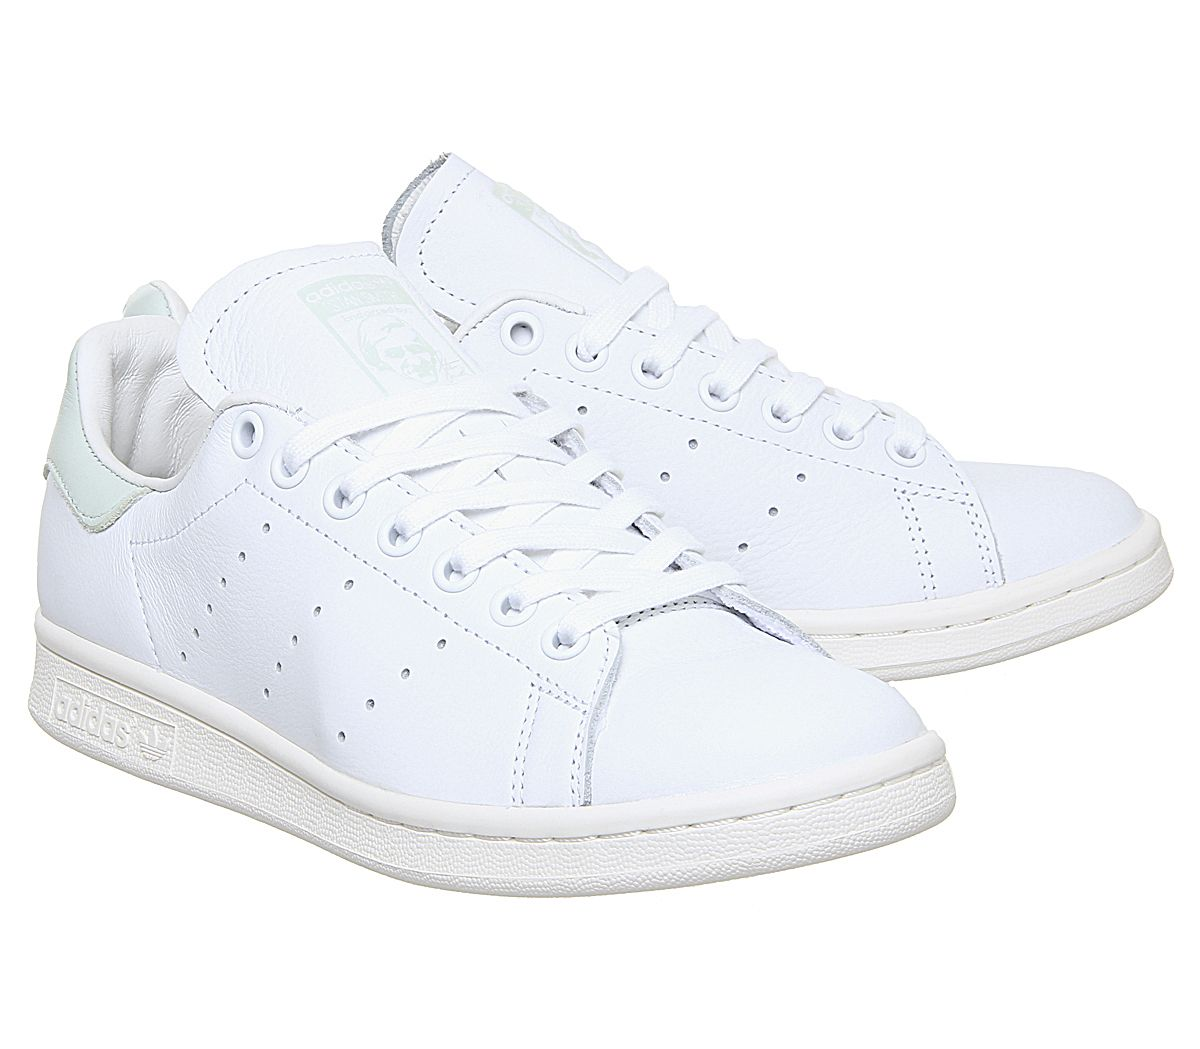 détaillant en ligne dbef3 73220 Details about Women adidas stan smith white trainers white green lin  sneakers- show original title